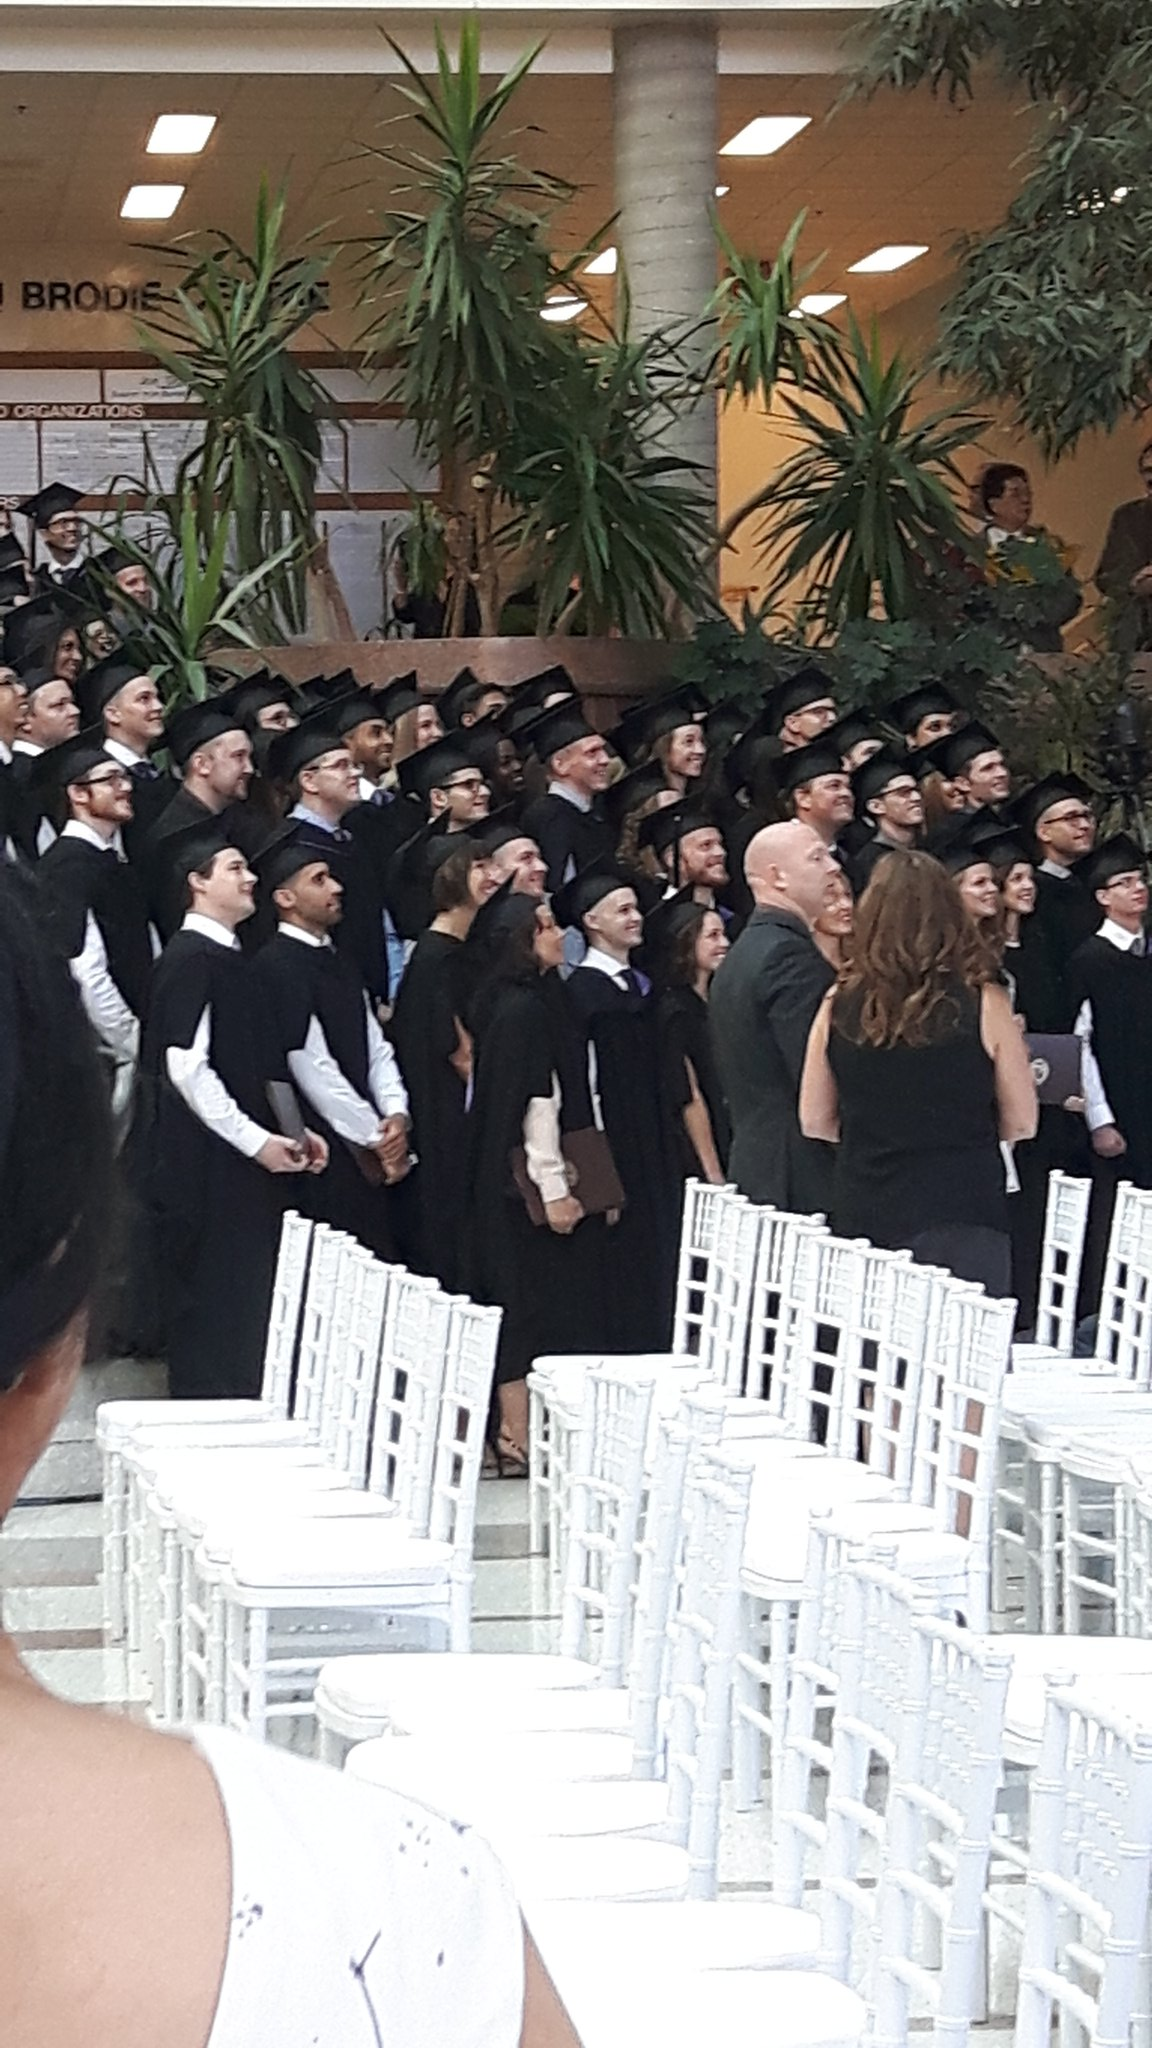 Congrats to the @UM_RadyFHS MD Class of 2017 & all the future neurologists & surgeons! See you at grand rounds! @umanitoba #umanitoba2017 https://t.co/WQhvQHBWuj